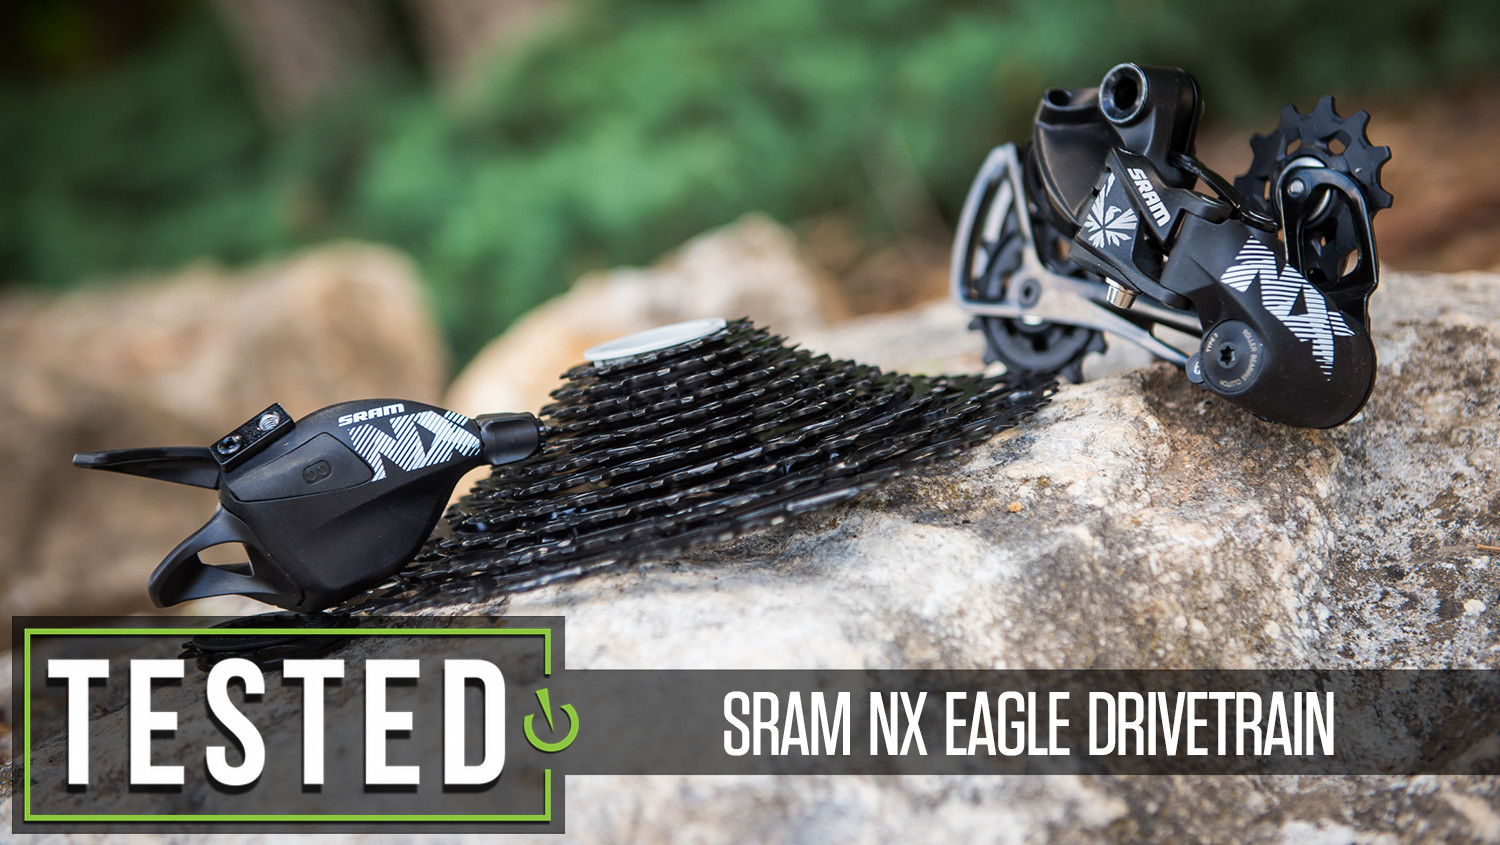 Tested: SRAM NX Eagle Drivetrain